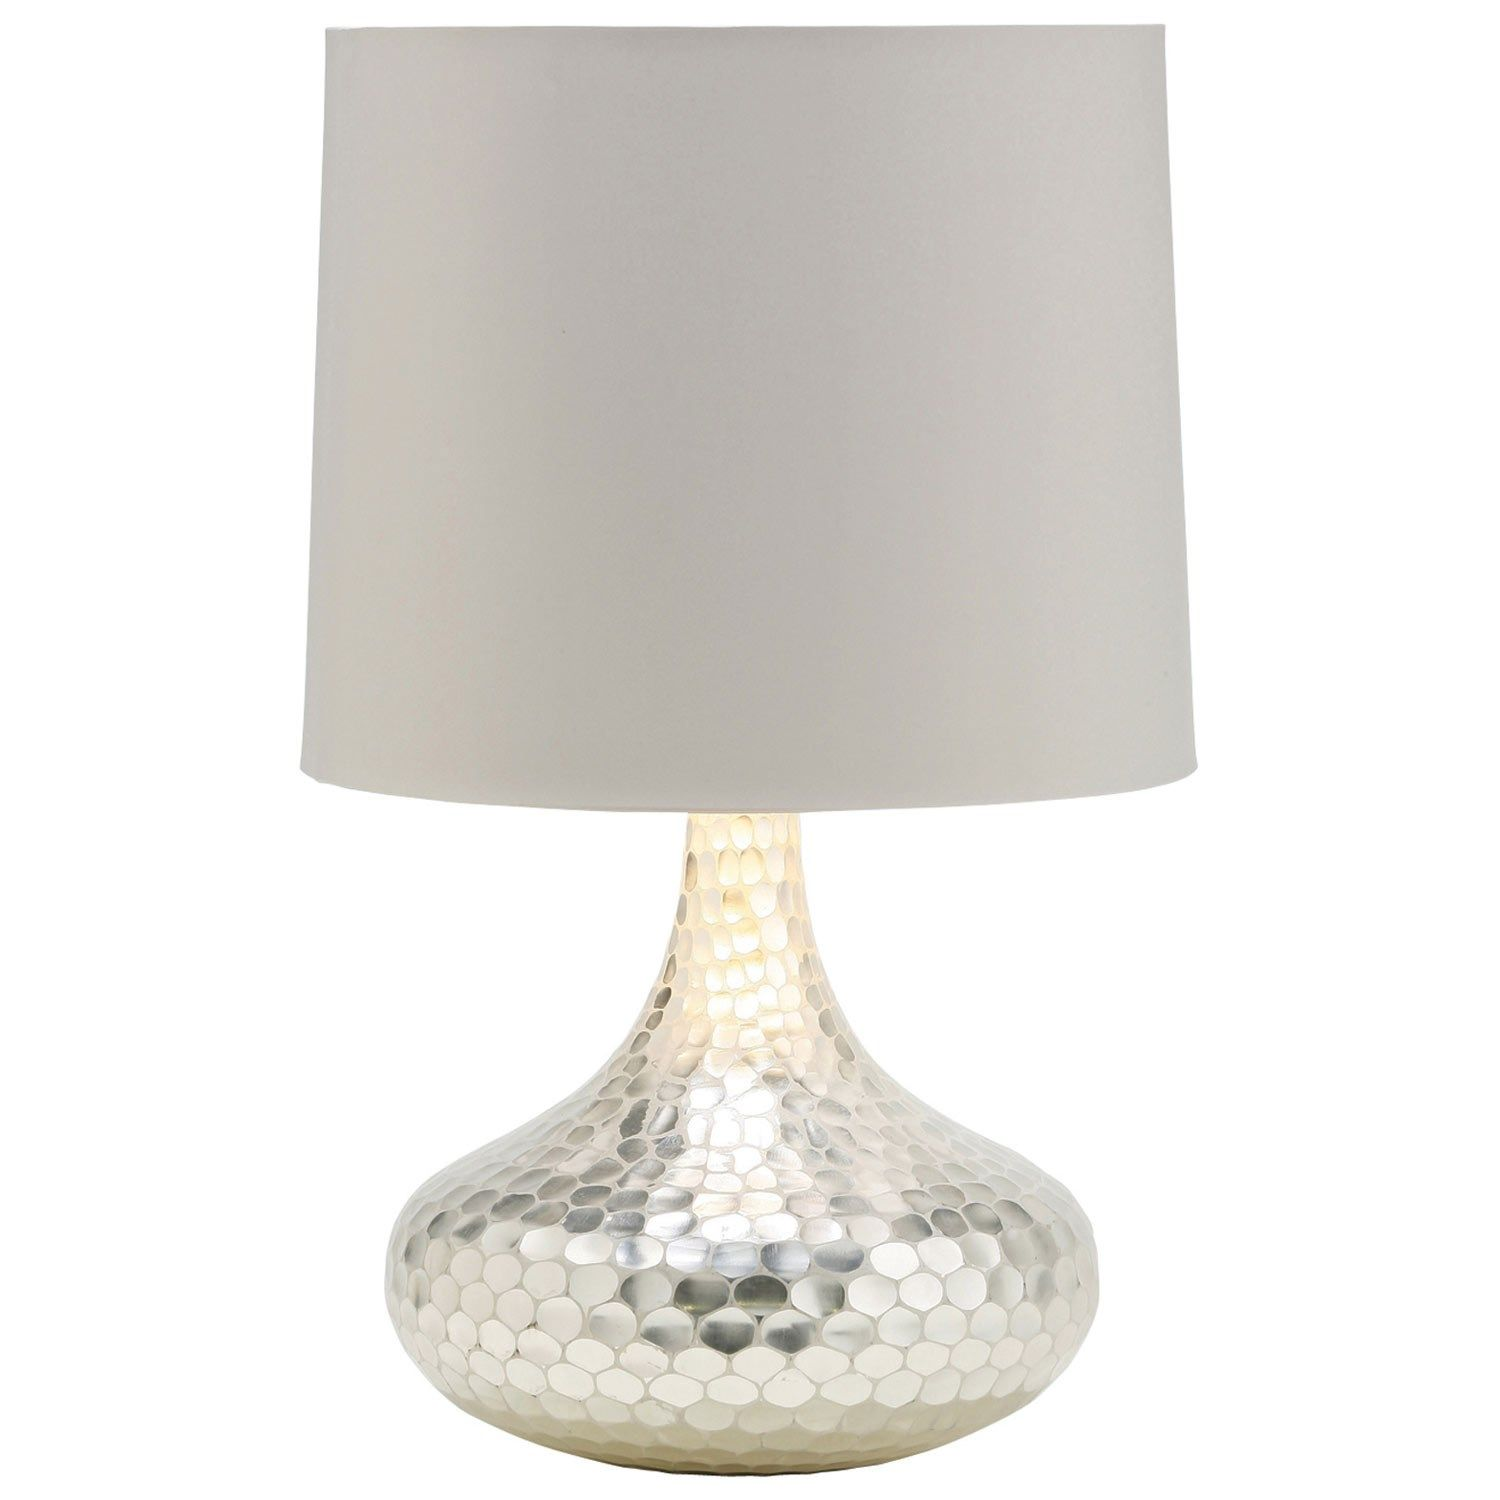 Arteriors Tortoise Silver Bottle Neck Glass Table Lamp Lamps